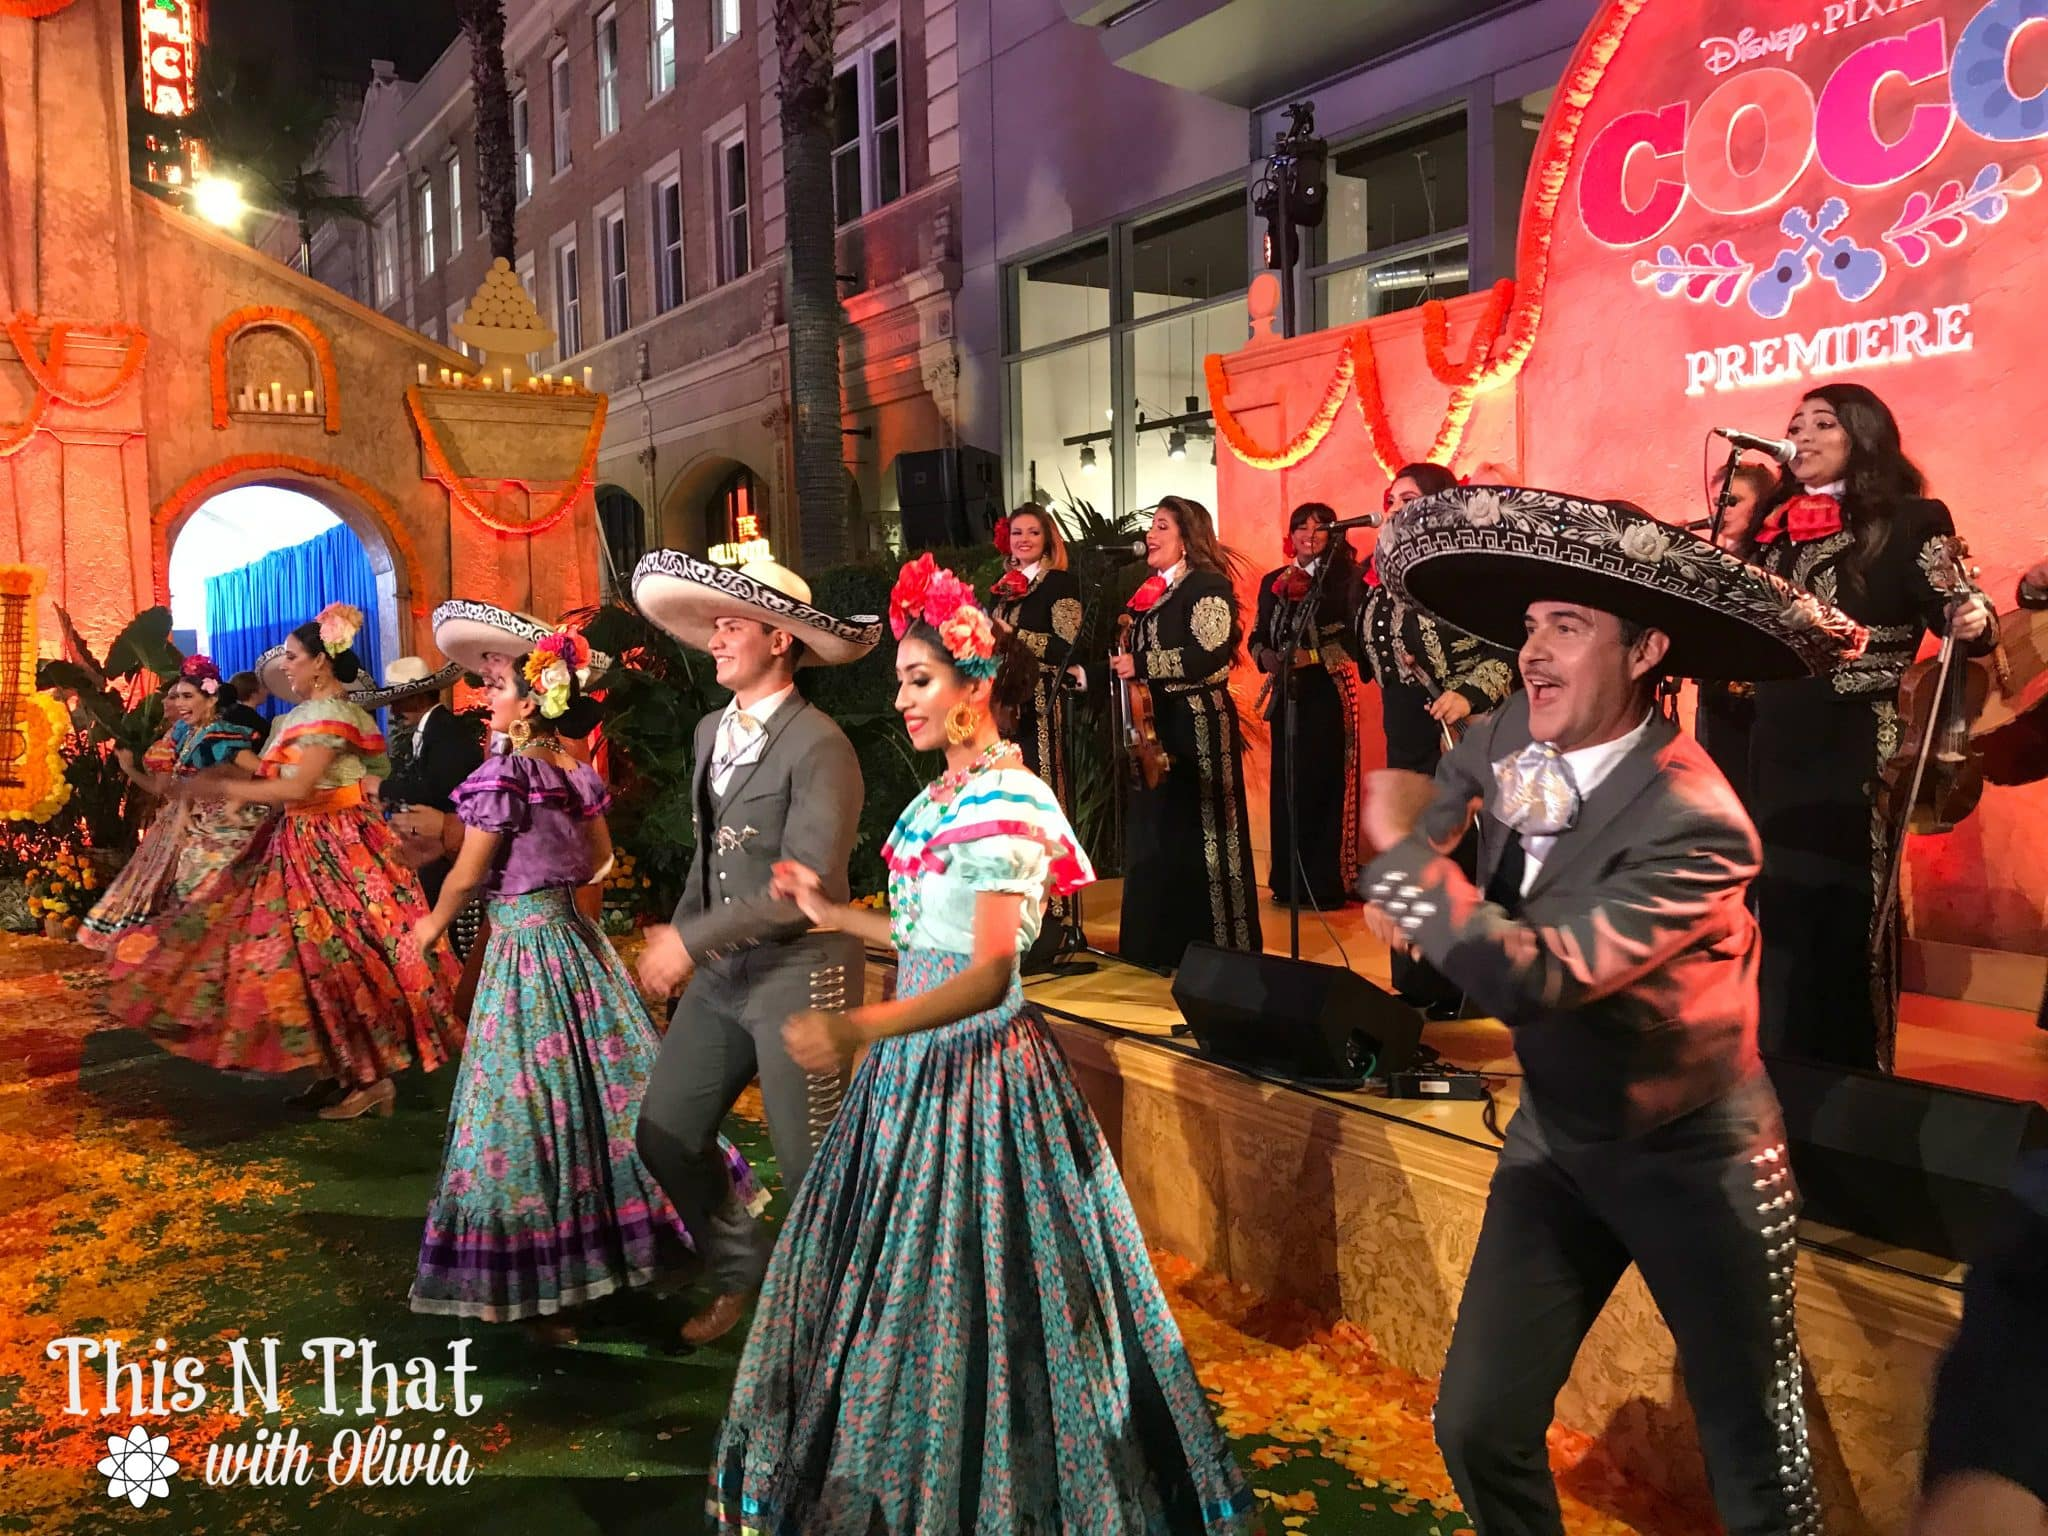 Pixar Coco Premiere Experience + Movie Review! #PixarCocoEvent